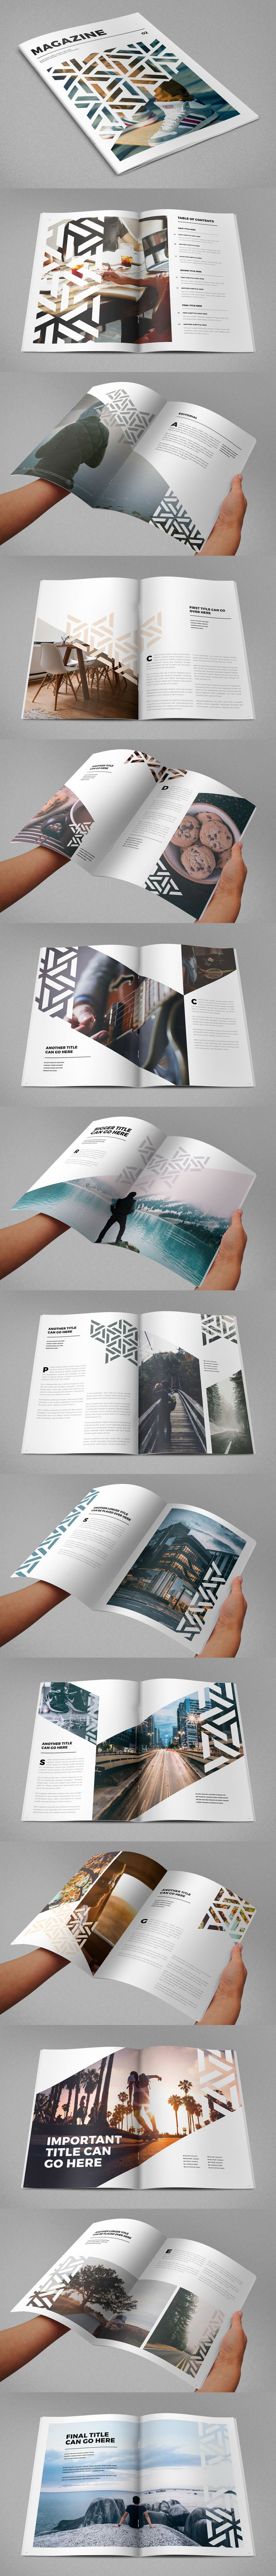 Typography - Modern Cool Pattern Magazine Template InDesign INDD - 28 Custom Pages... - CoDesign Magazine | Daily-updated Magazine celebrating creative talent from around the world